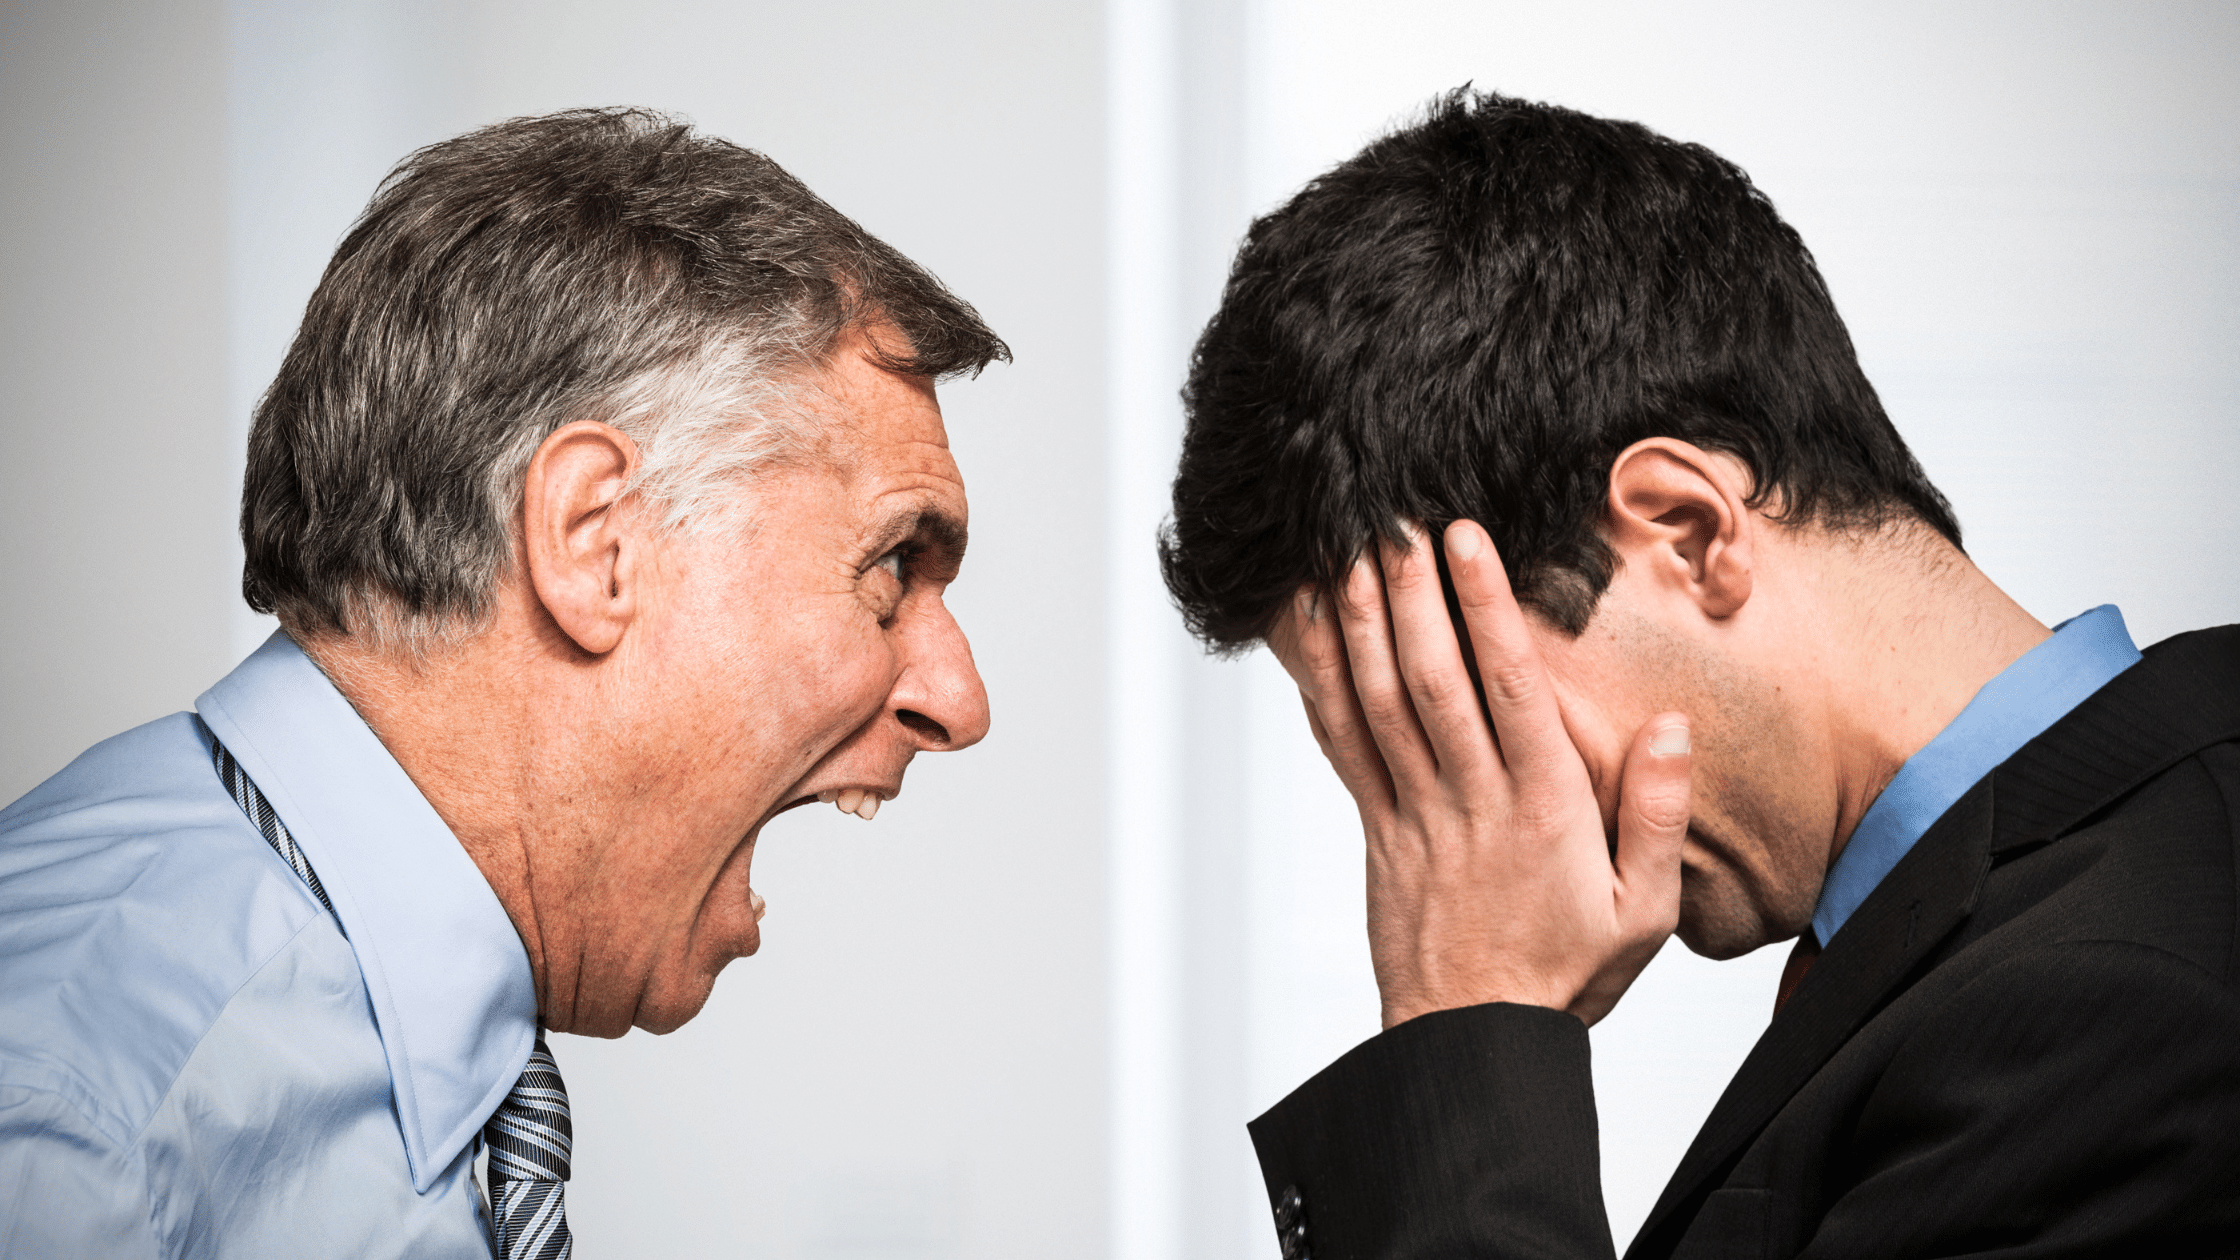 How to manage tough conversations with your boss